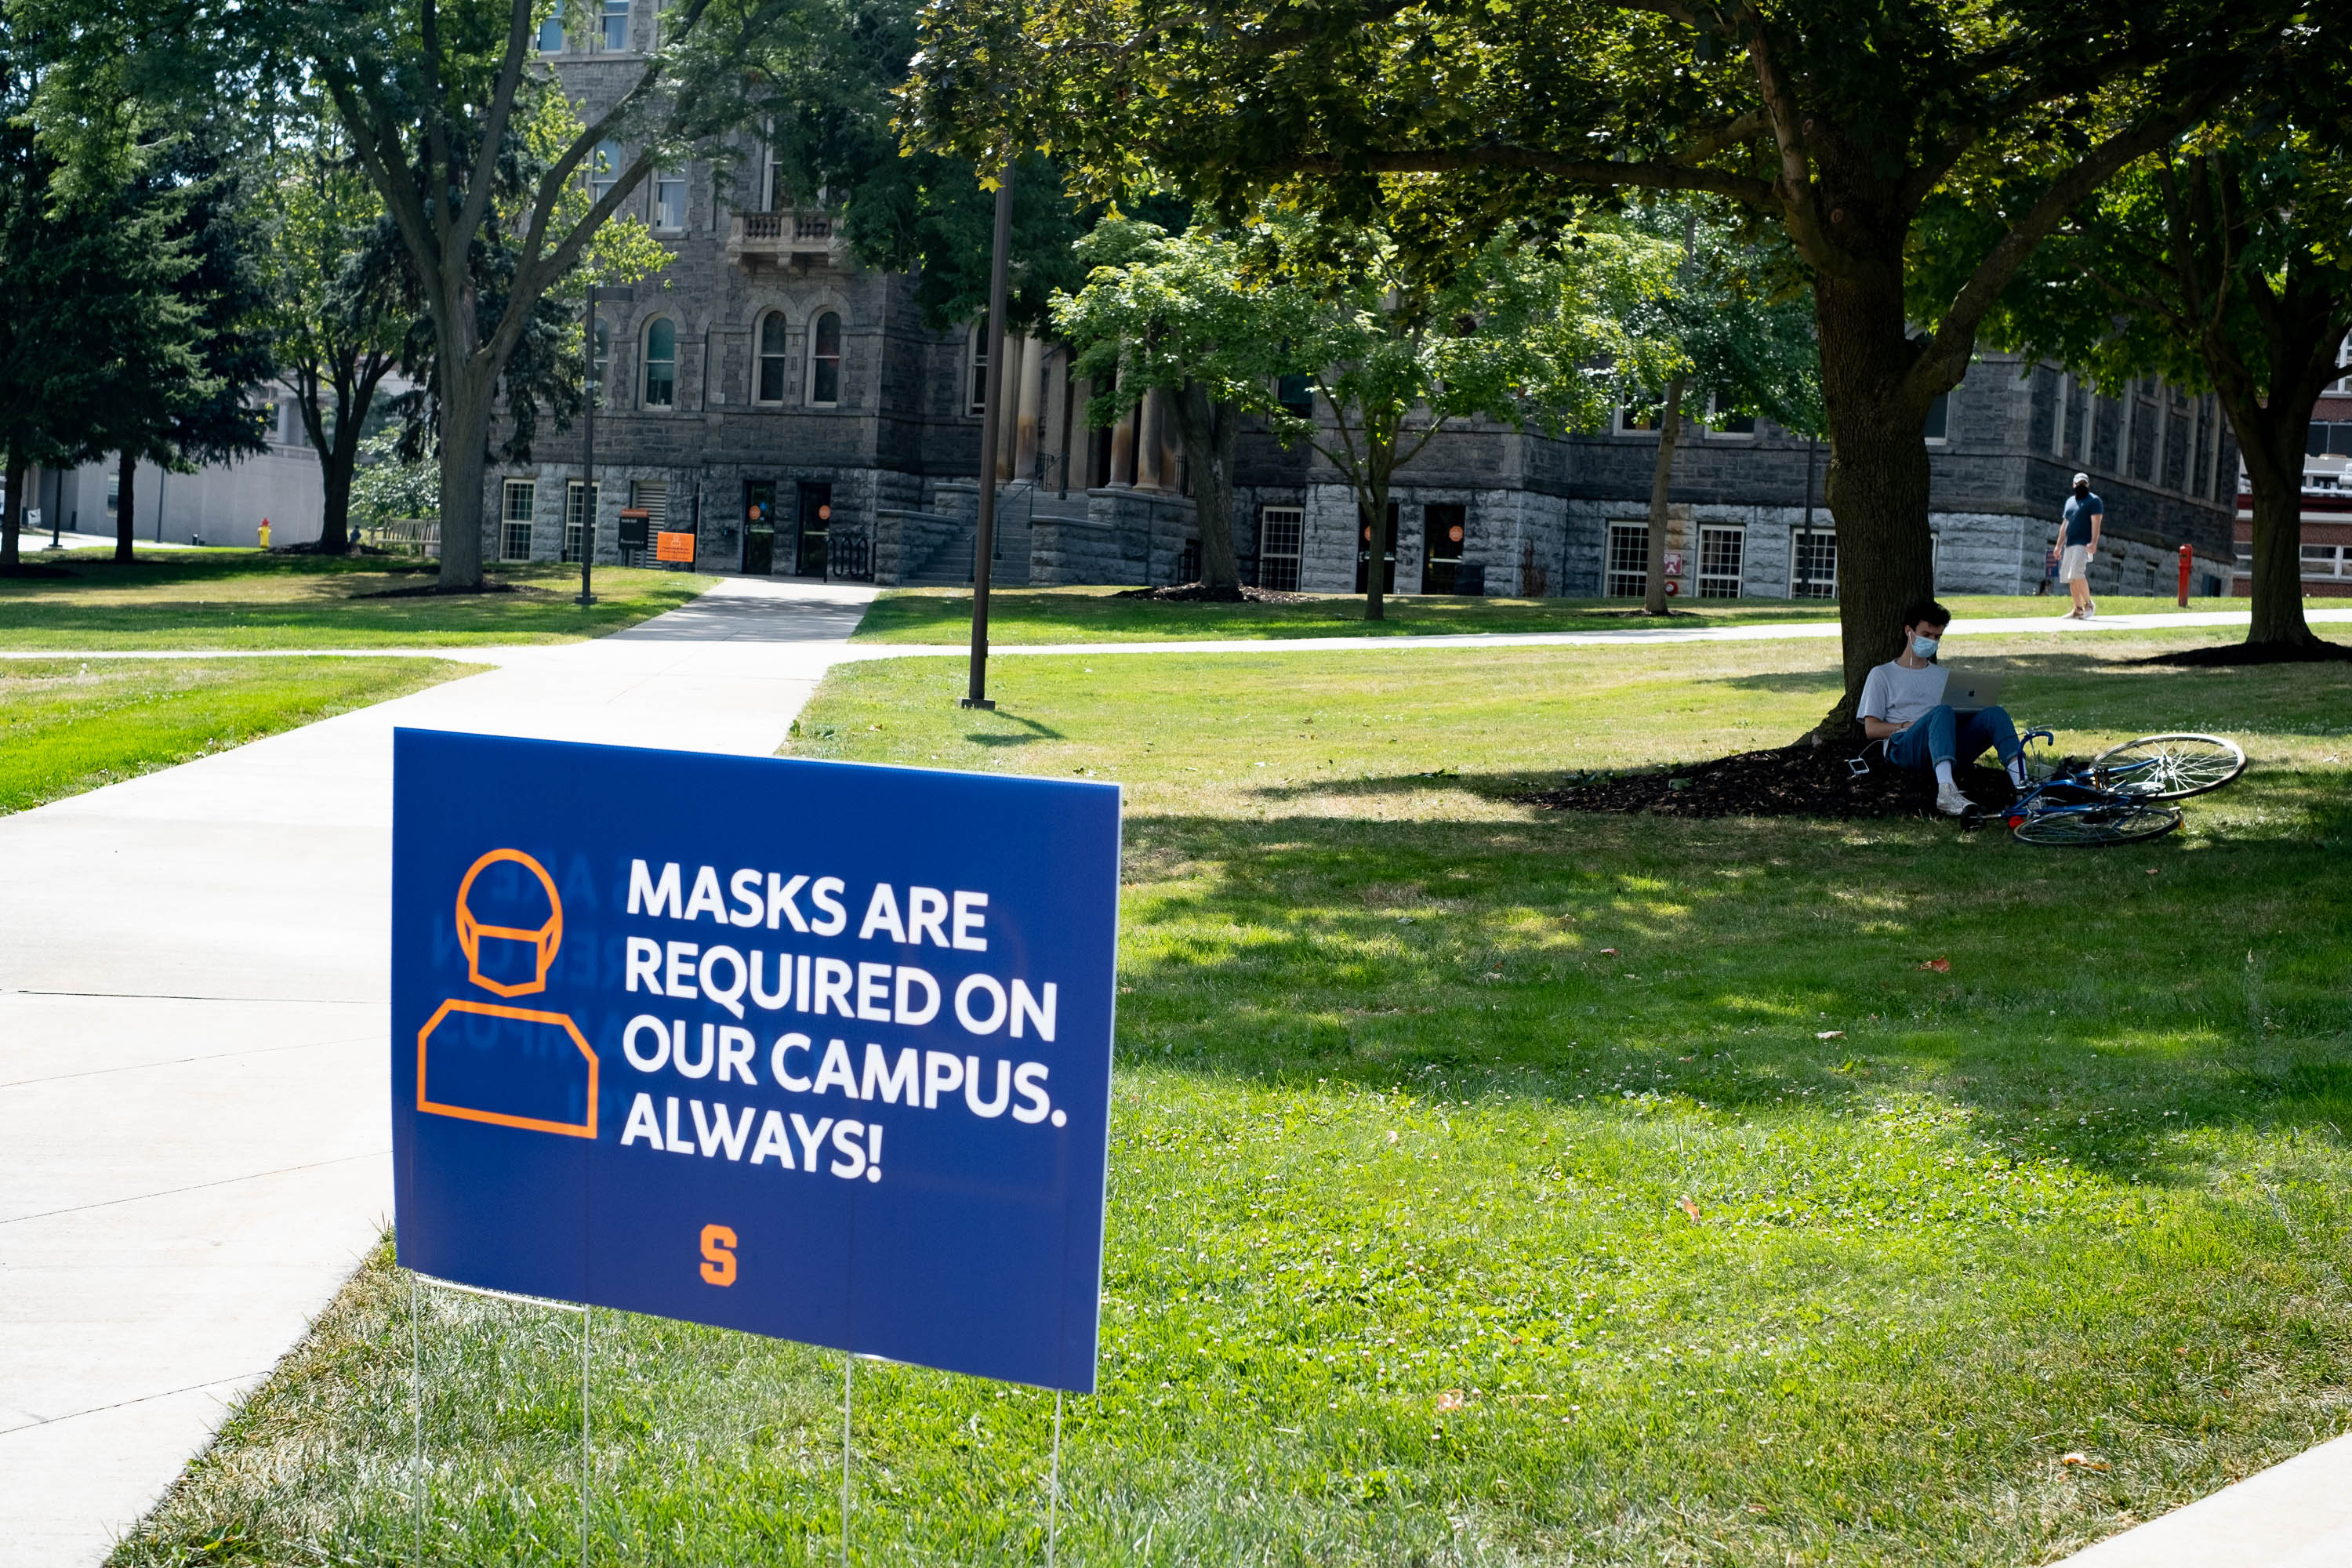 On August 24, 2020, the first day of classes at Syracuse University, a sign reminds students to wear their masks at all times.